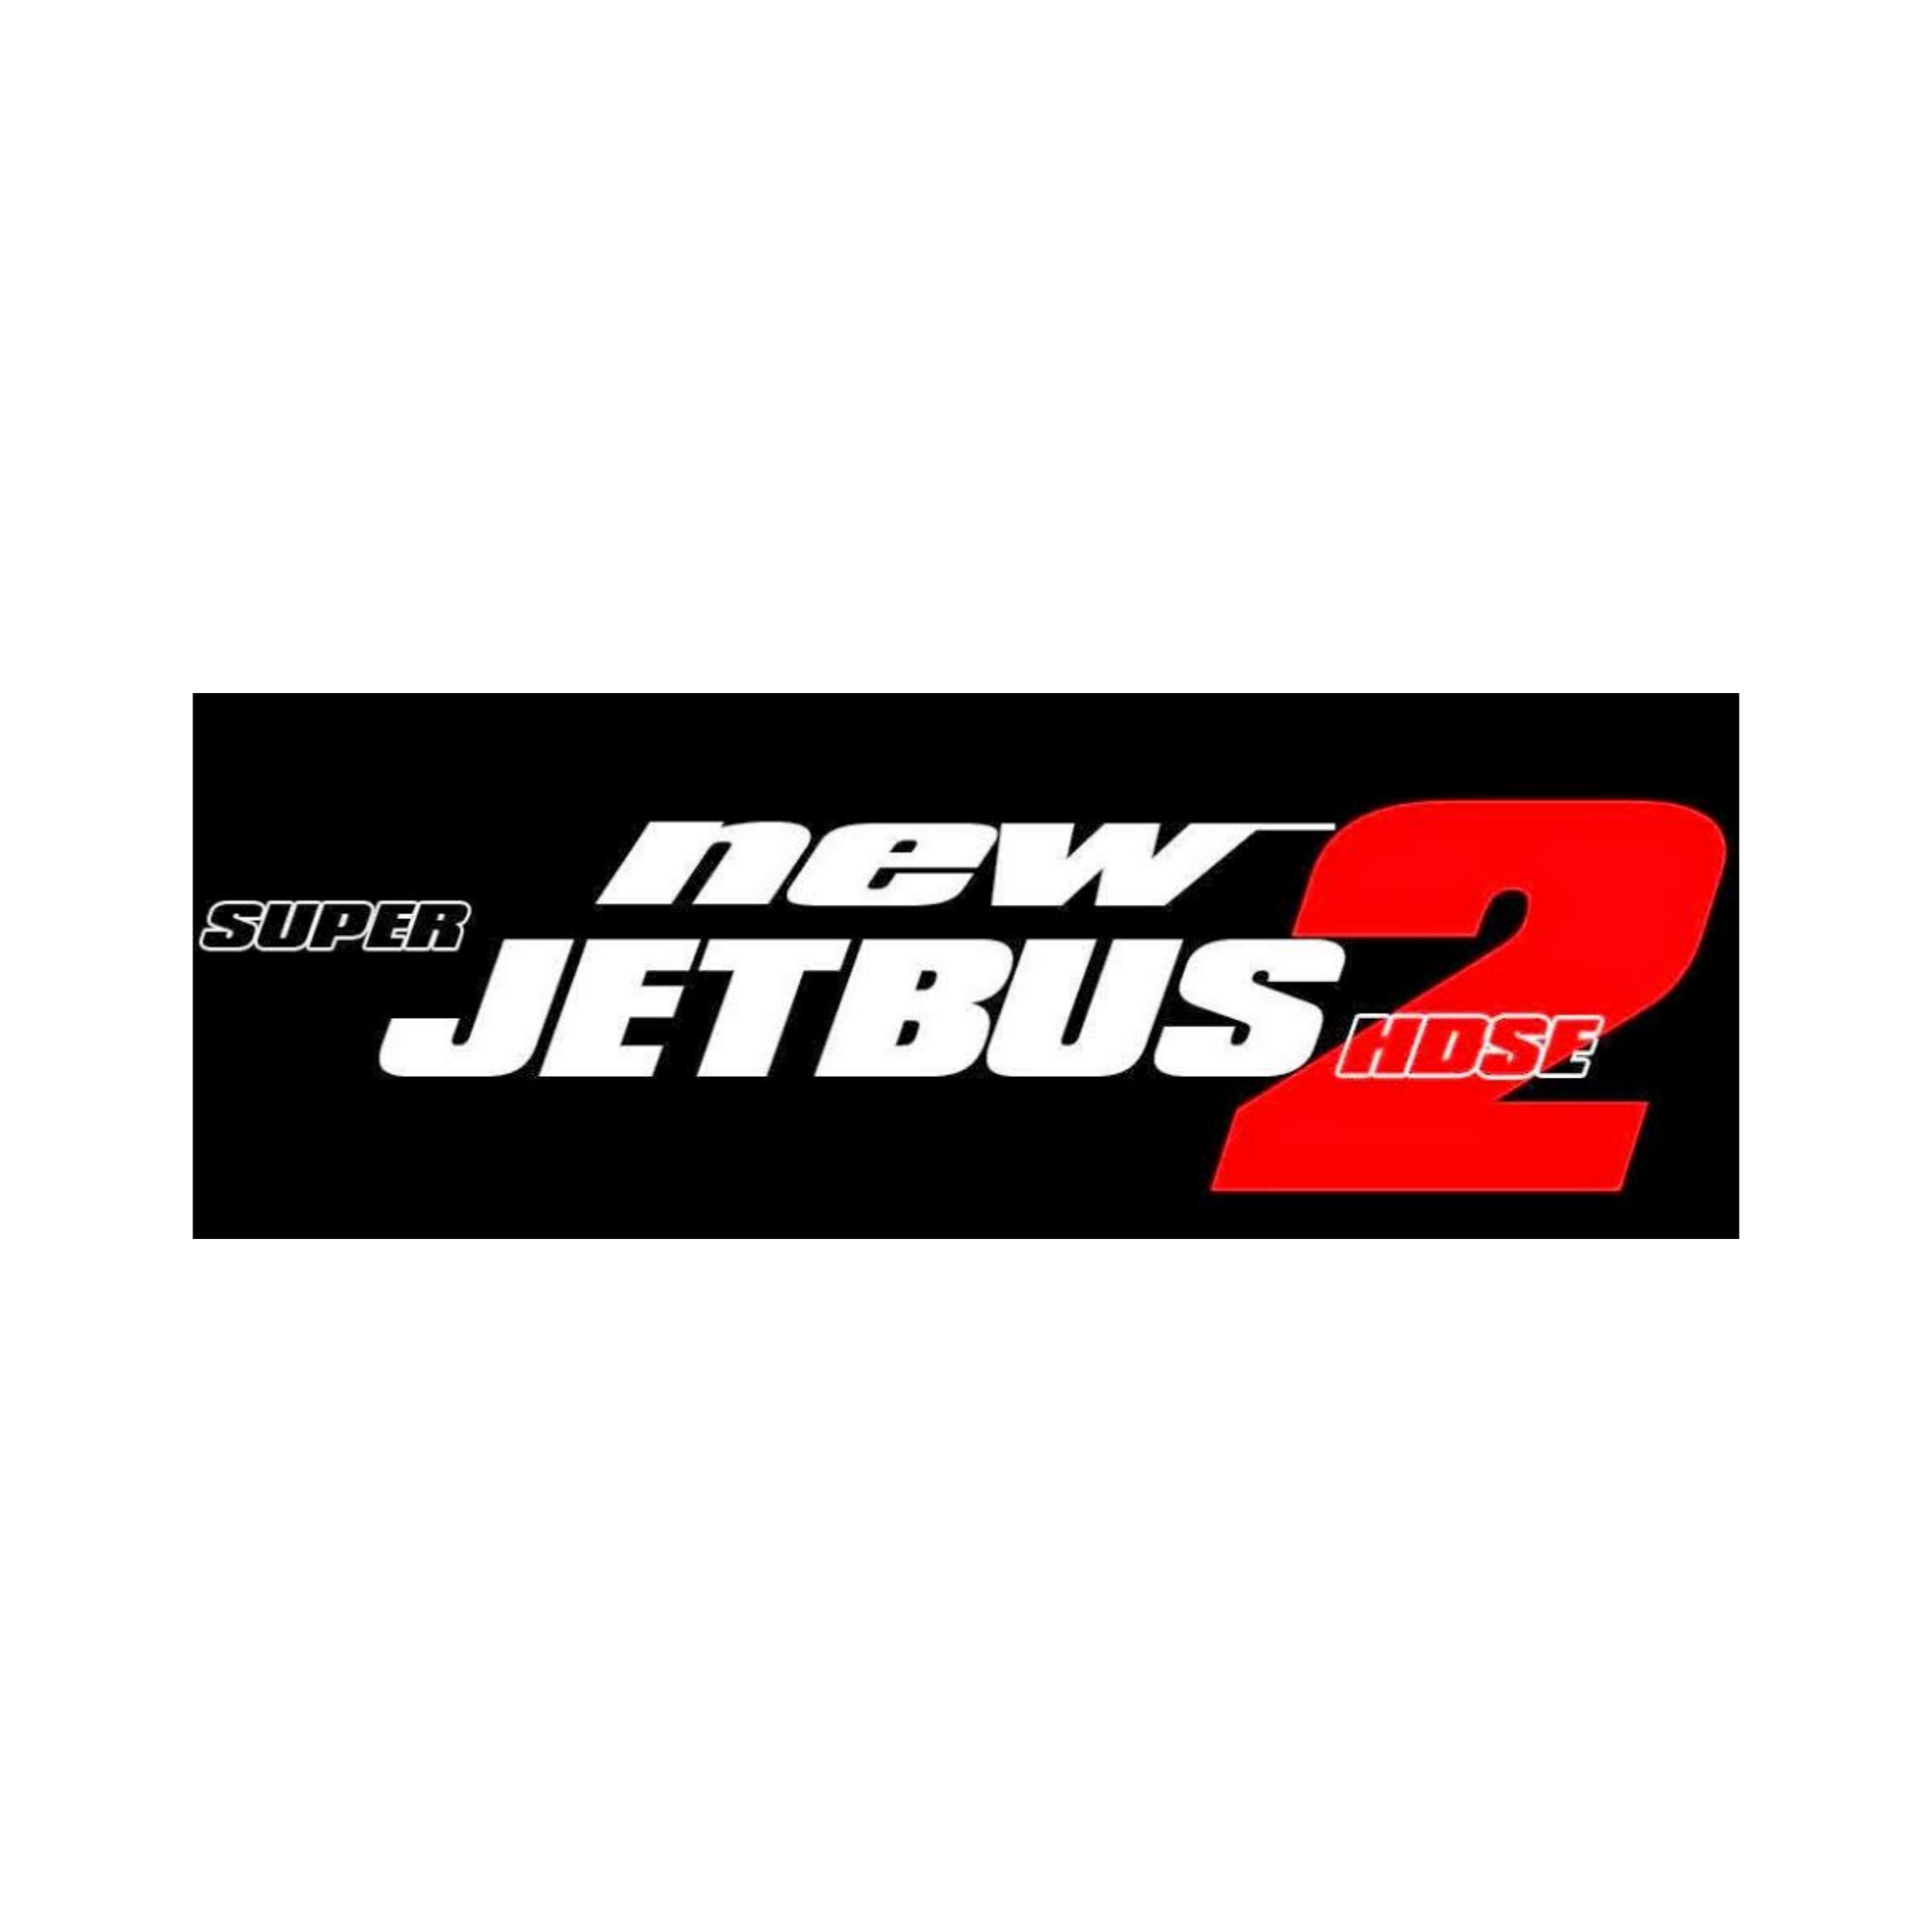 Jetbus Bussid Bussimulator Sticker By Mabiring74